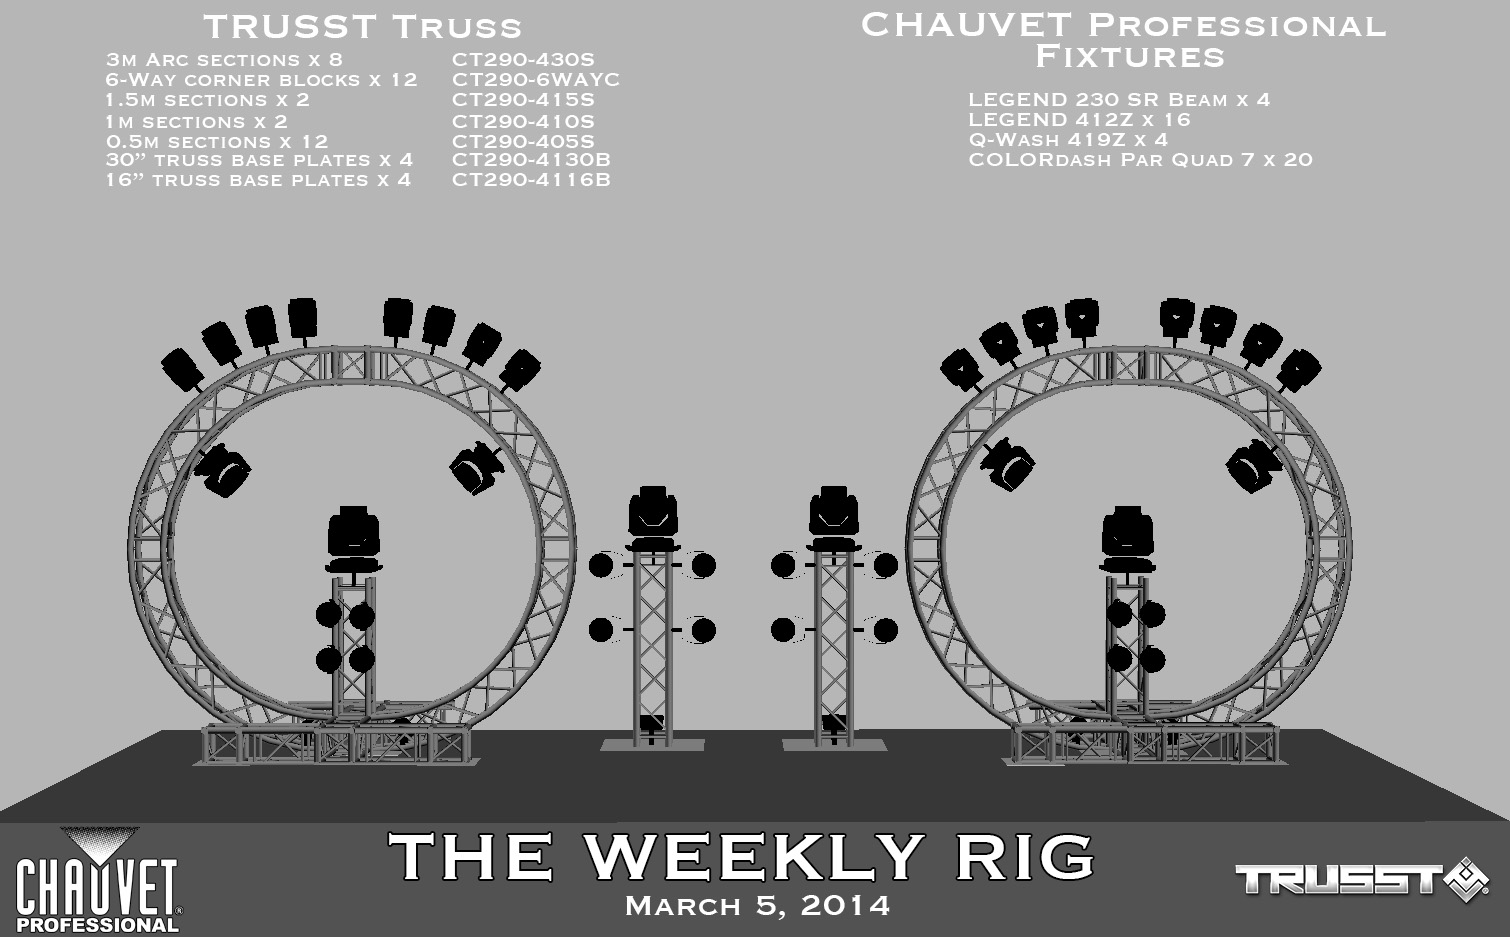 The Weekly Rig